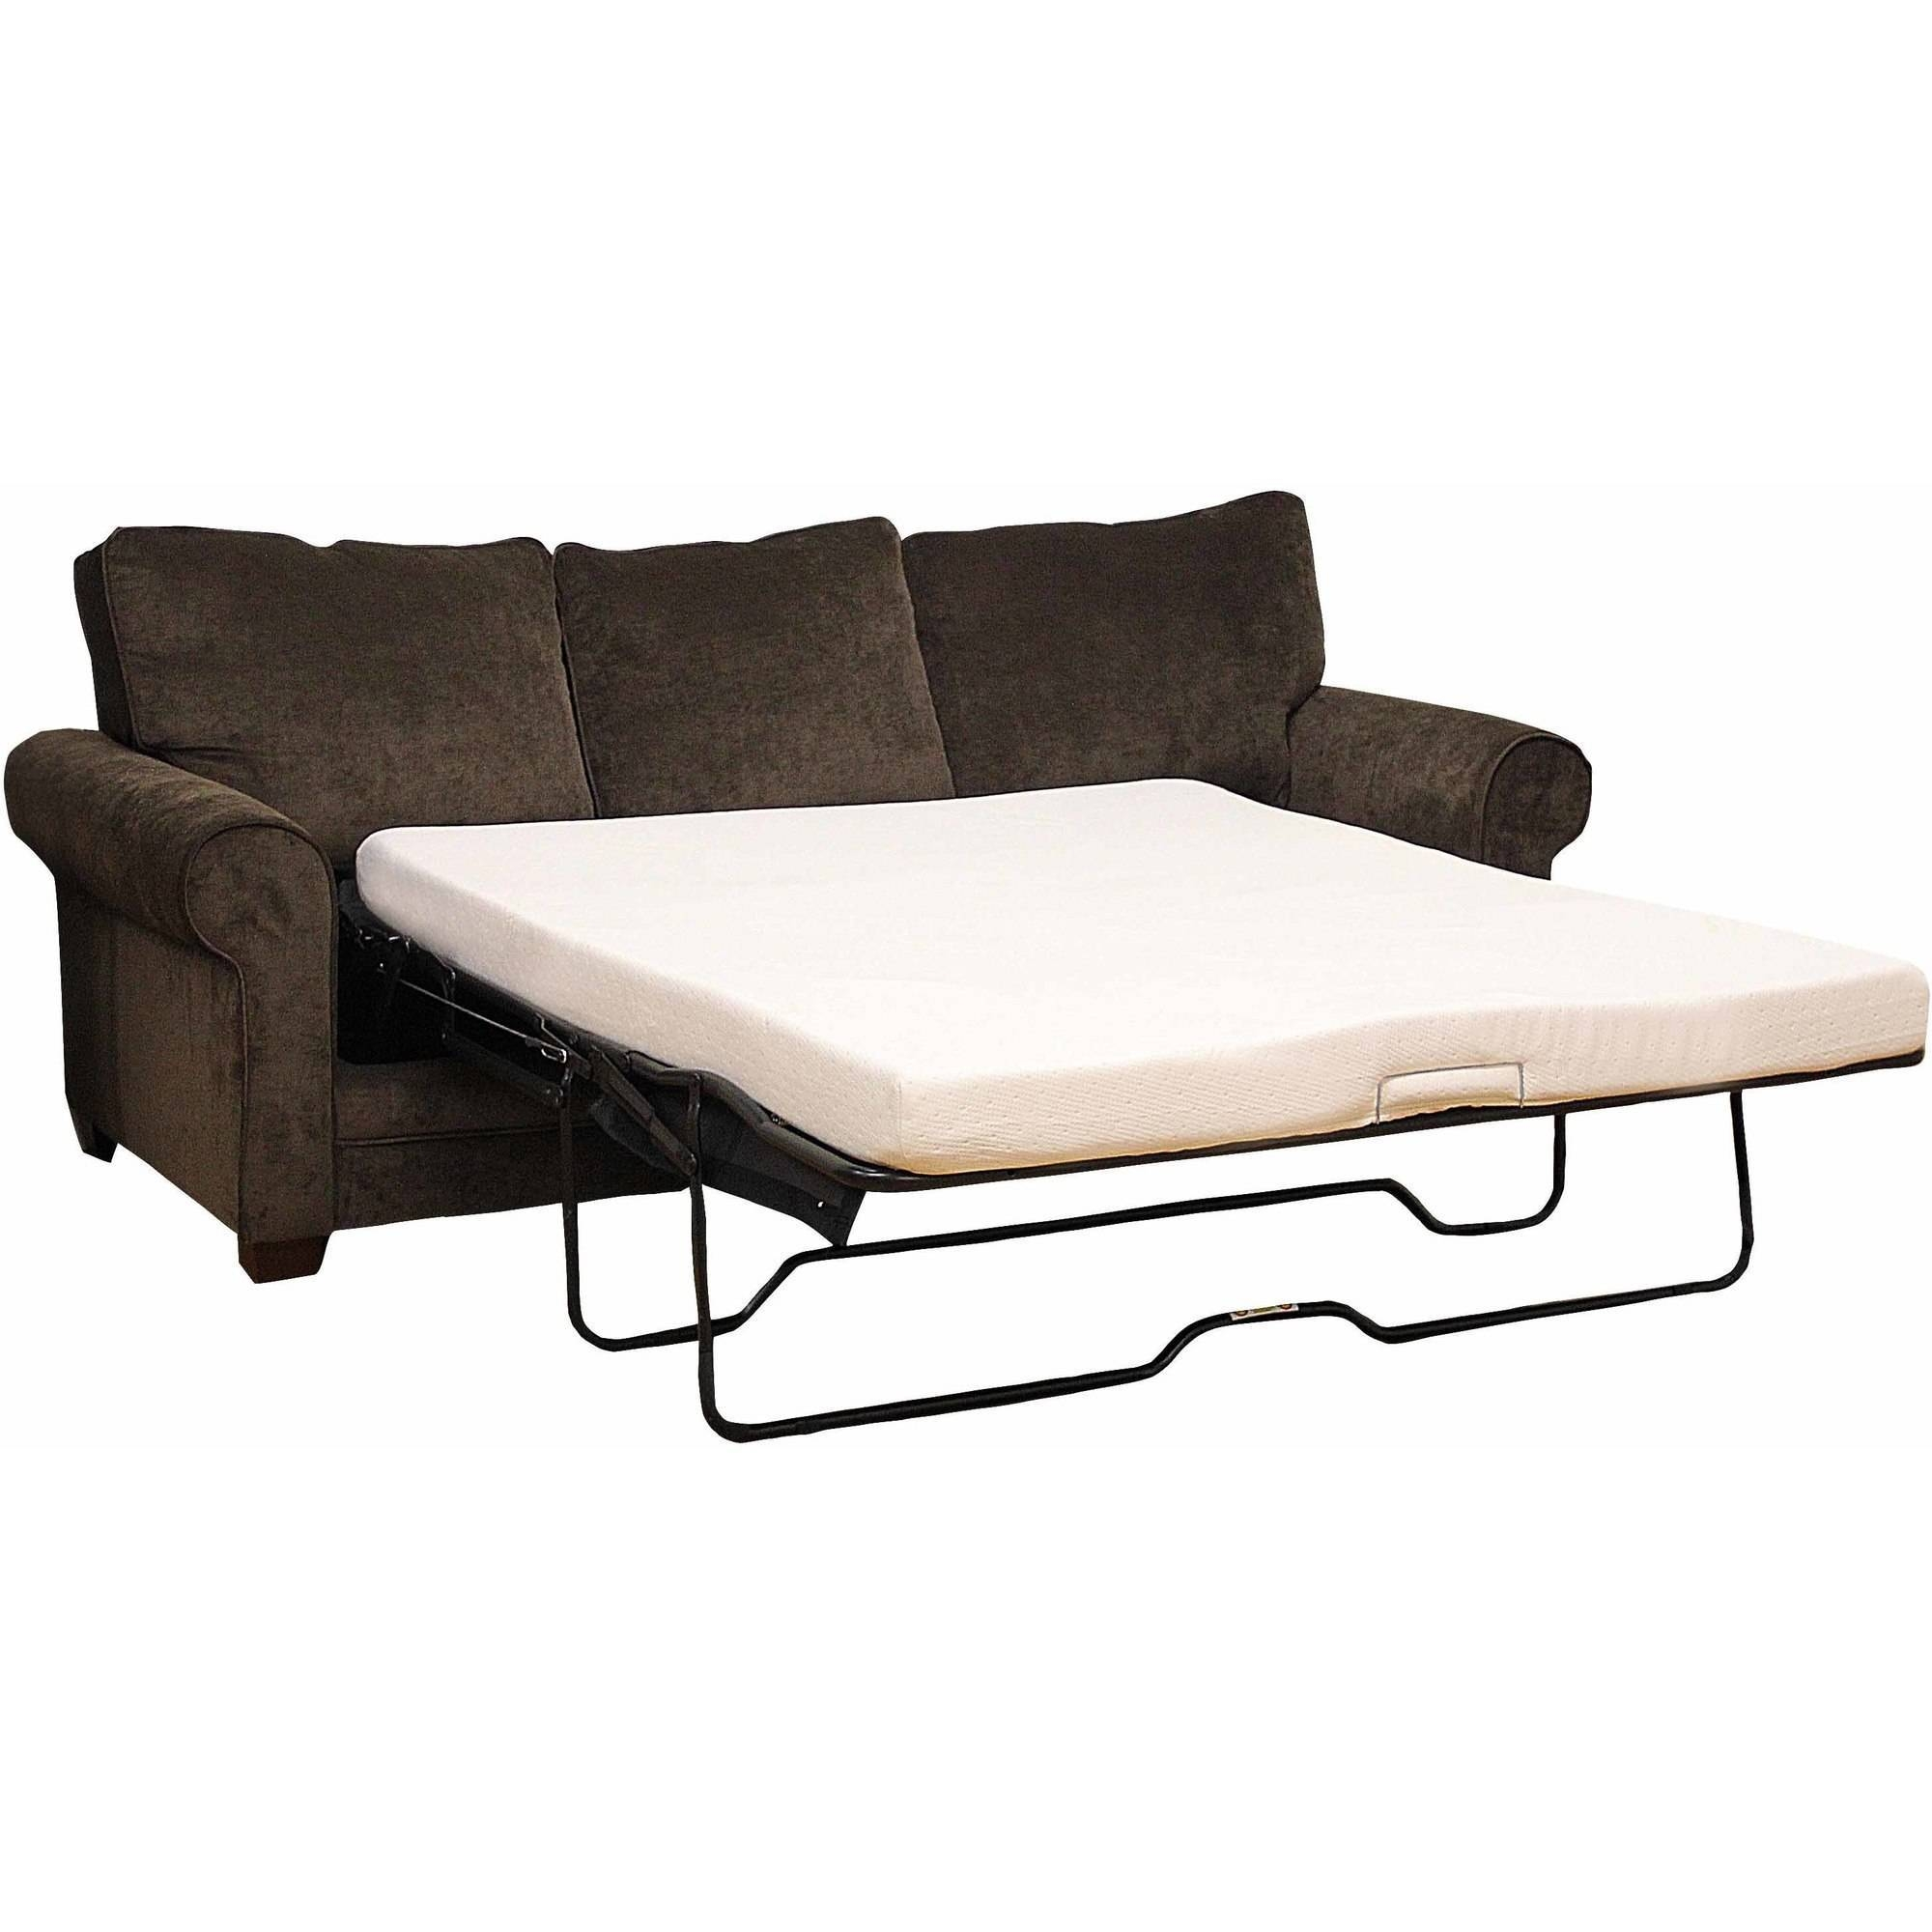 "Modern Sleep Memory Foam 4.5"" Sofa Bed Mattress, Multiple Sizes for Pull Out Sofa Chairs (Image 21 of 30)"